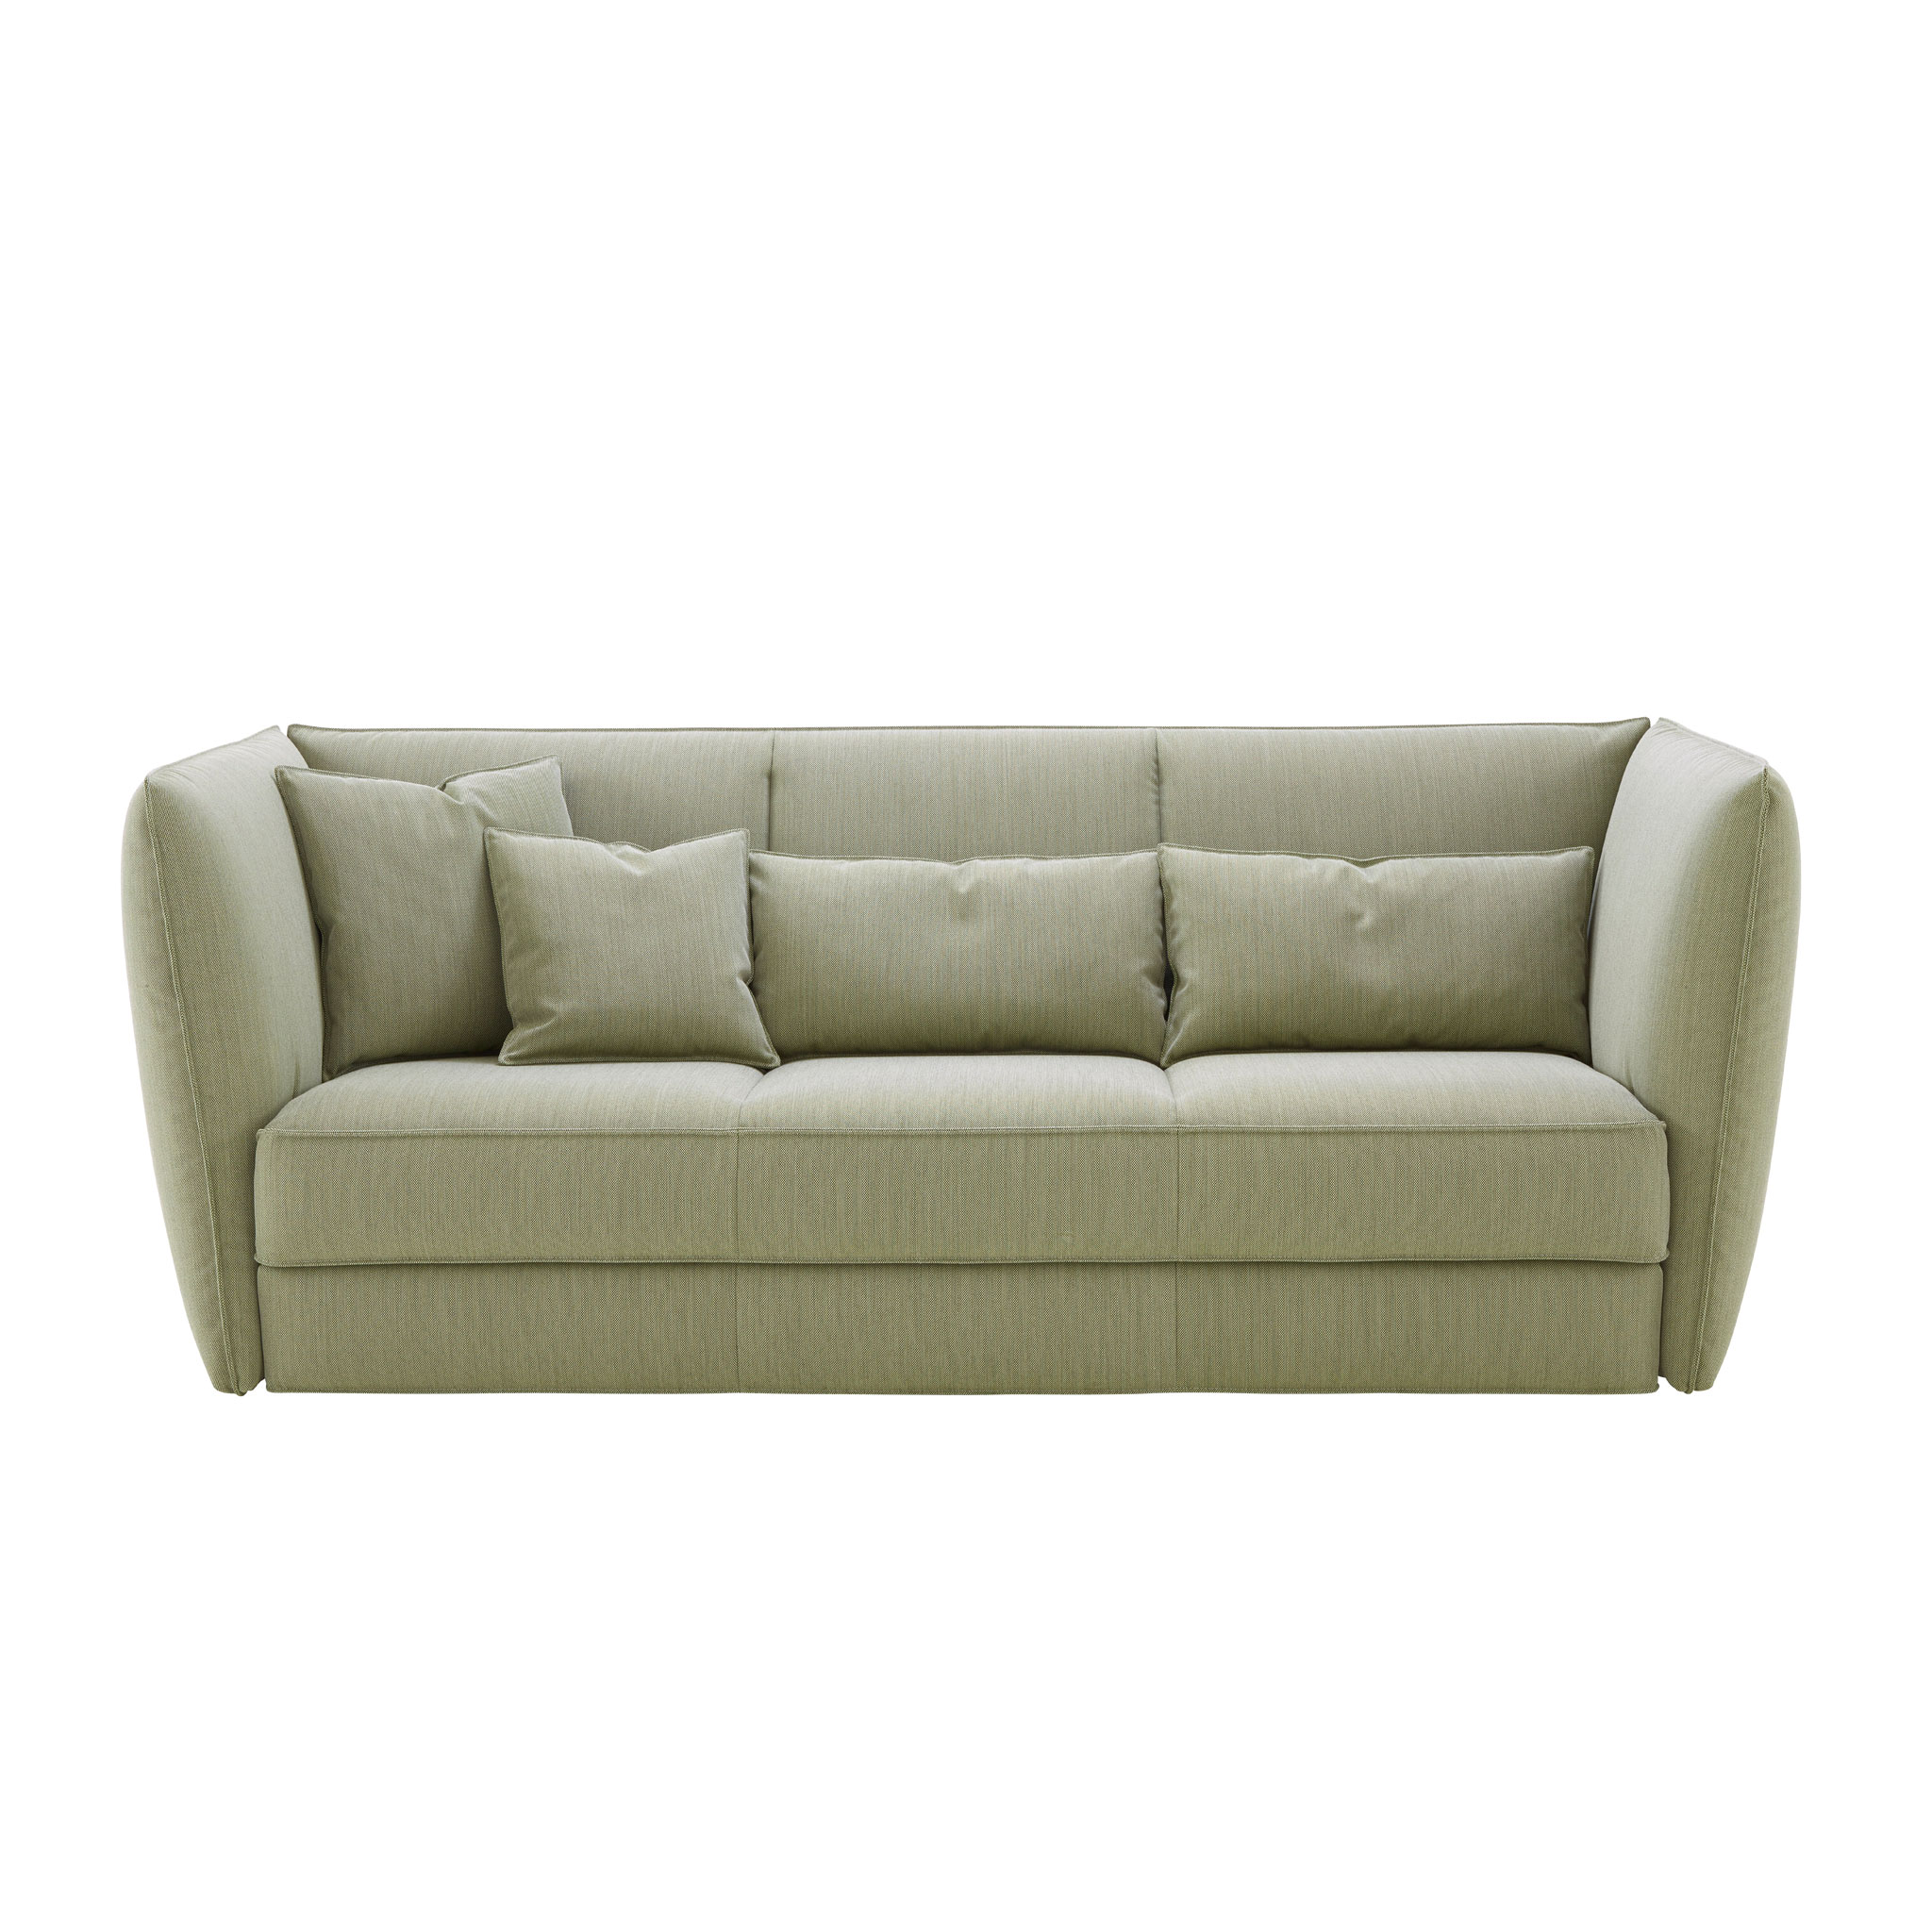 sofas on credit with no checks sofa u love burbank factory roset ligne | taraba home review